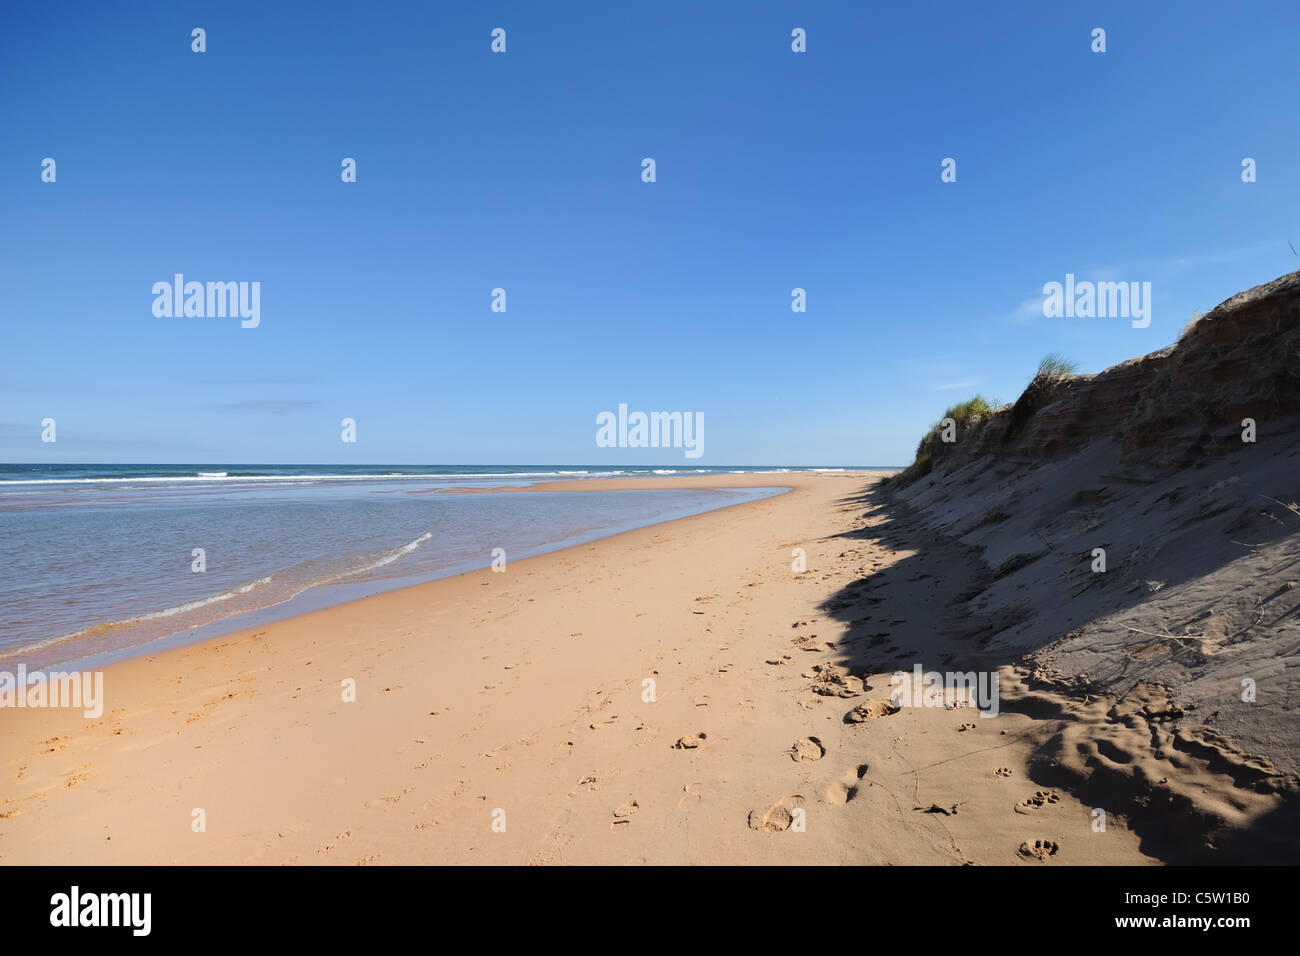 Deserted golden sands and sea on the horizon near Aberdeen in Scotland. - Stock Image